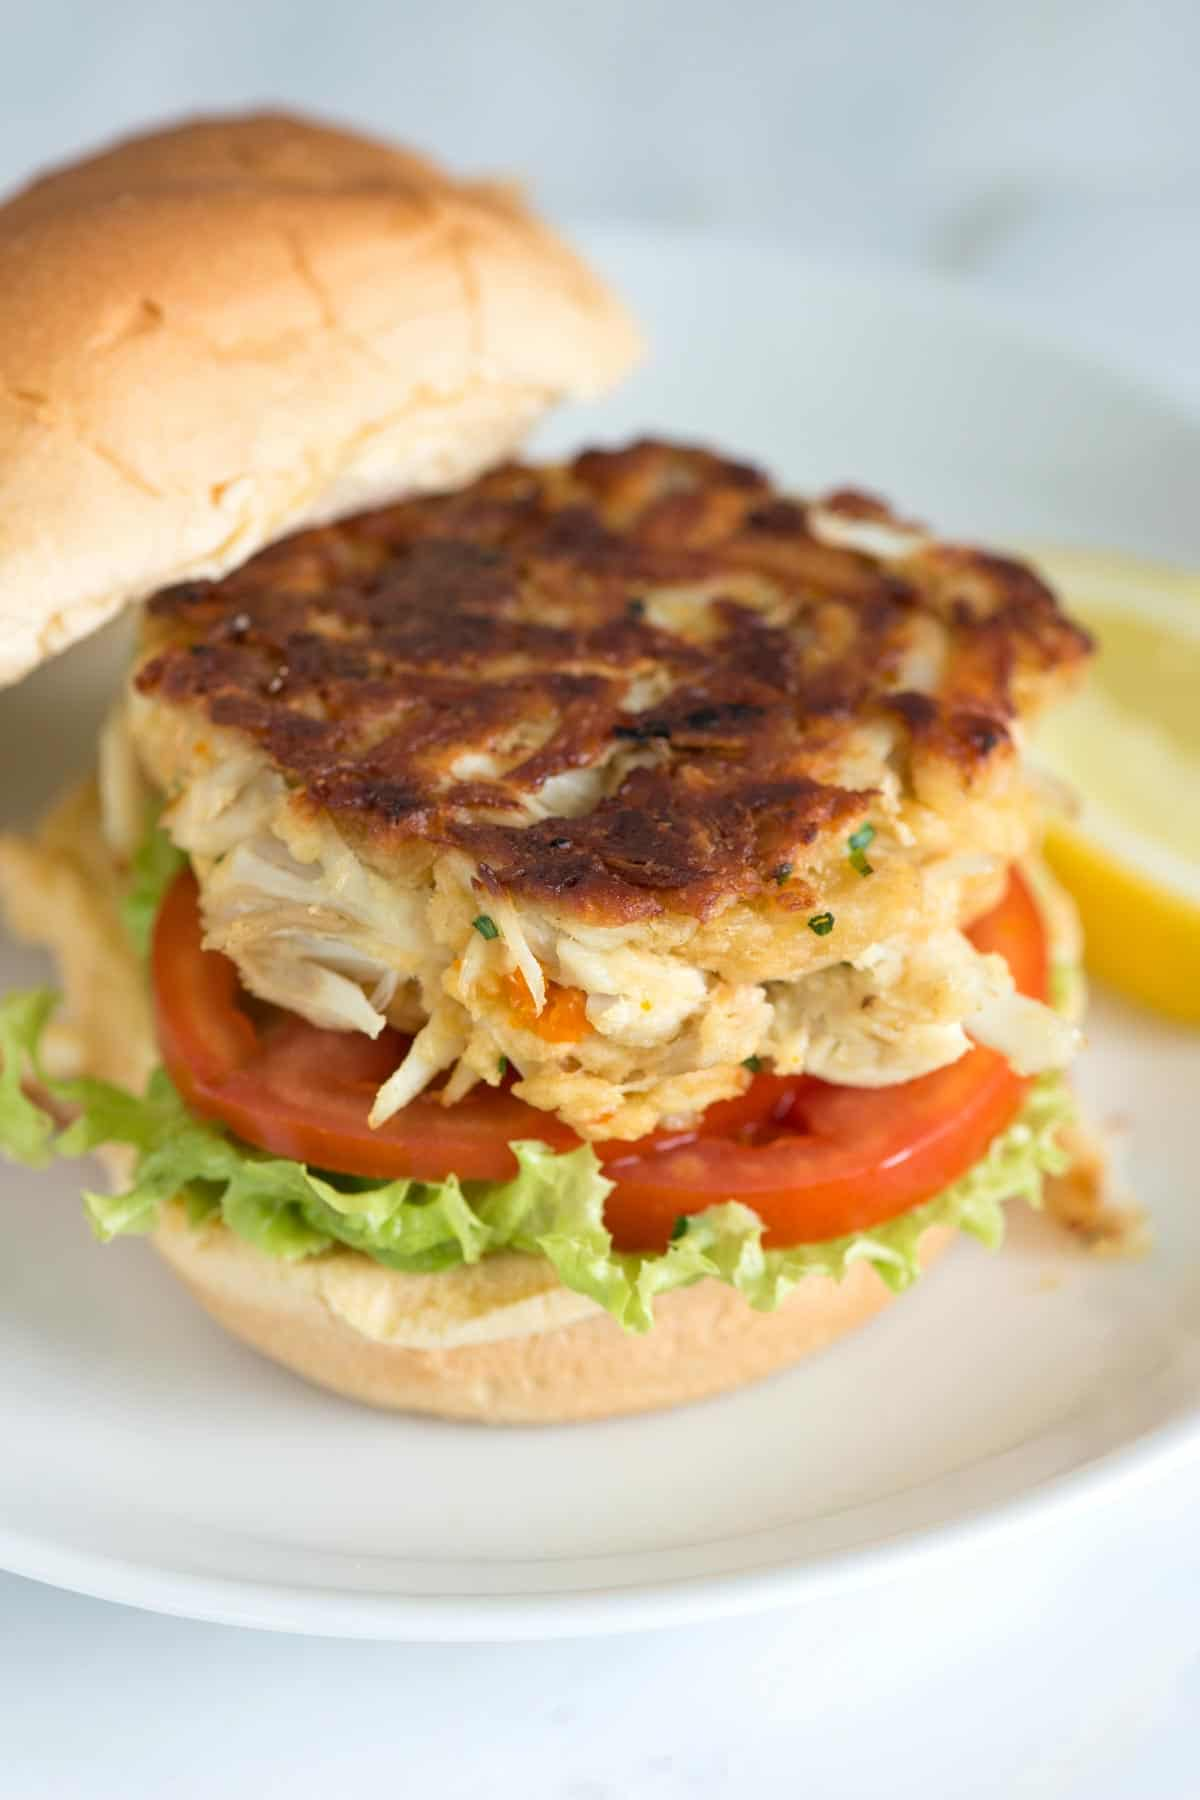 How To Make A Maryland Style Crab Cake